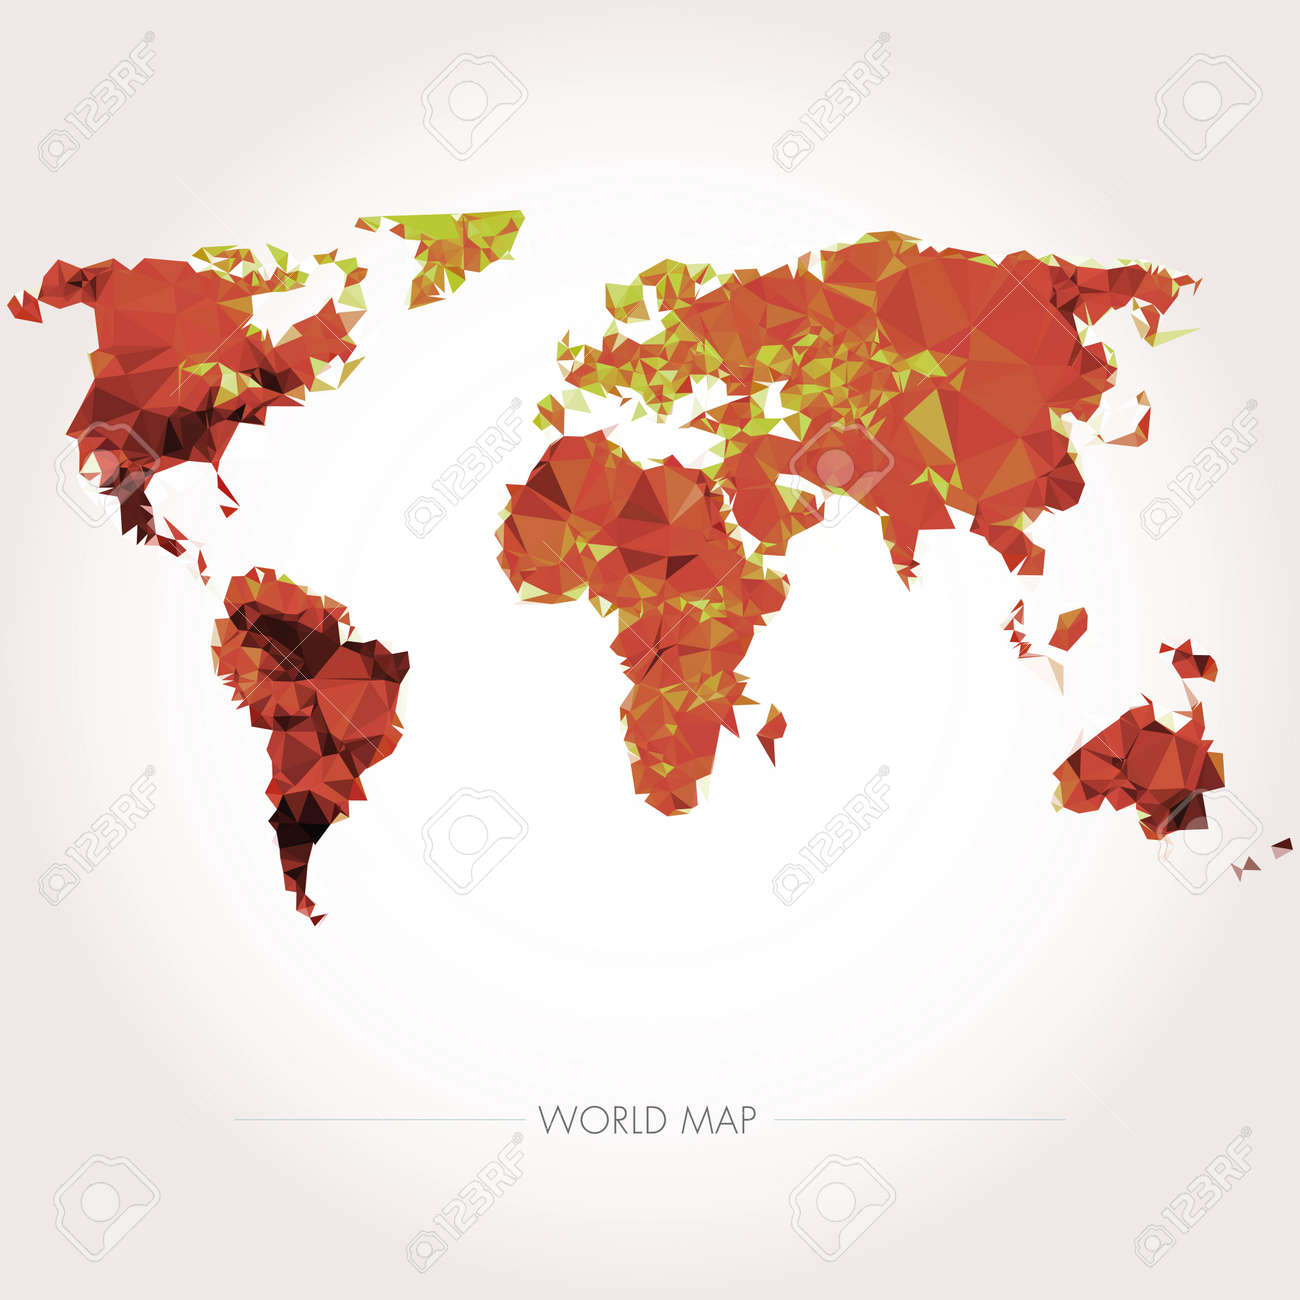 Earth world map low poly vector illustration royalty free earth world map low poly vector illustration stock vector 38167875 gumiabroncs Images